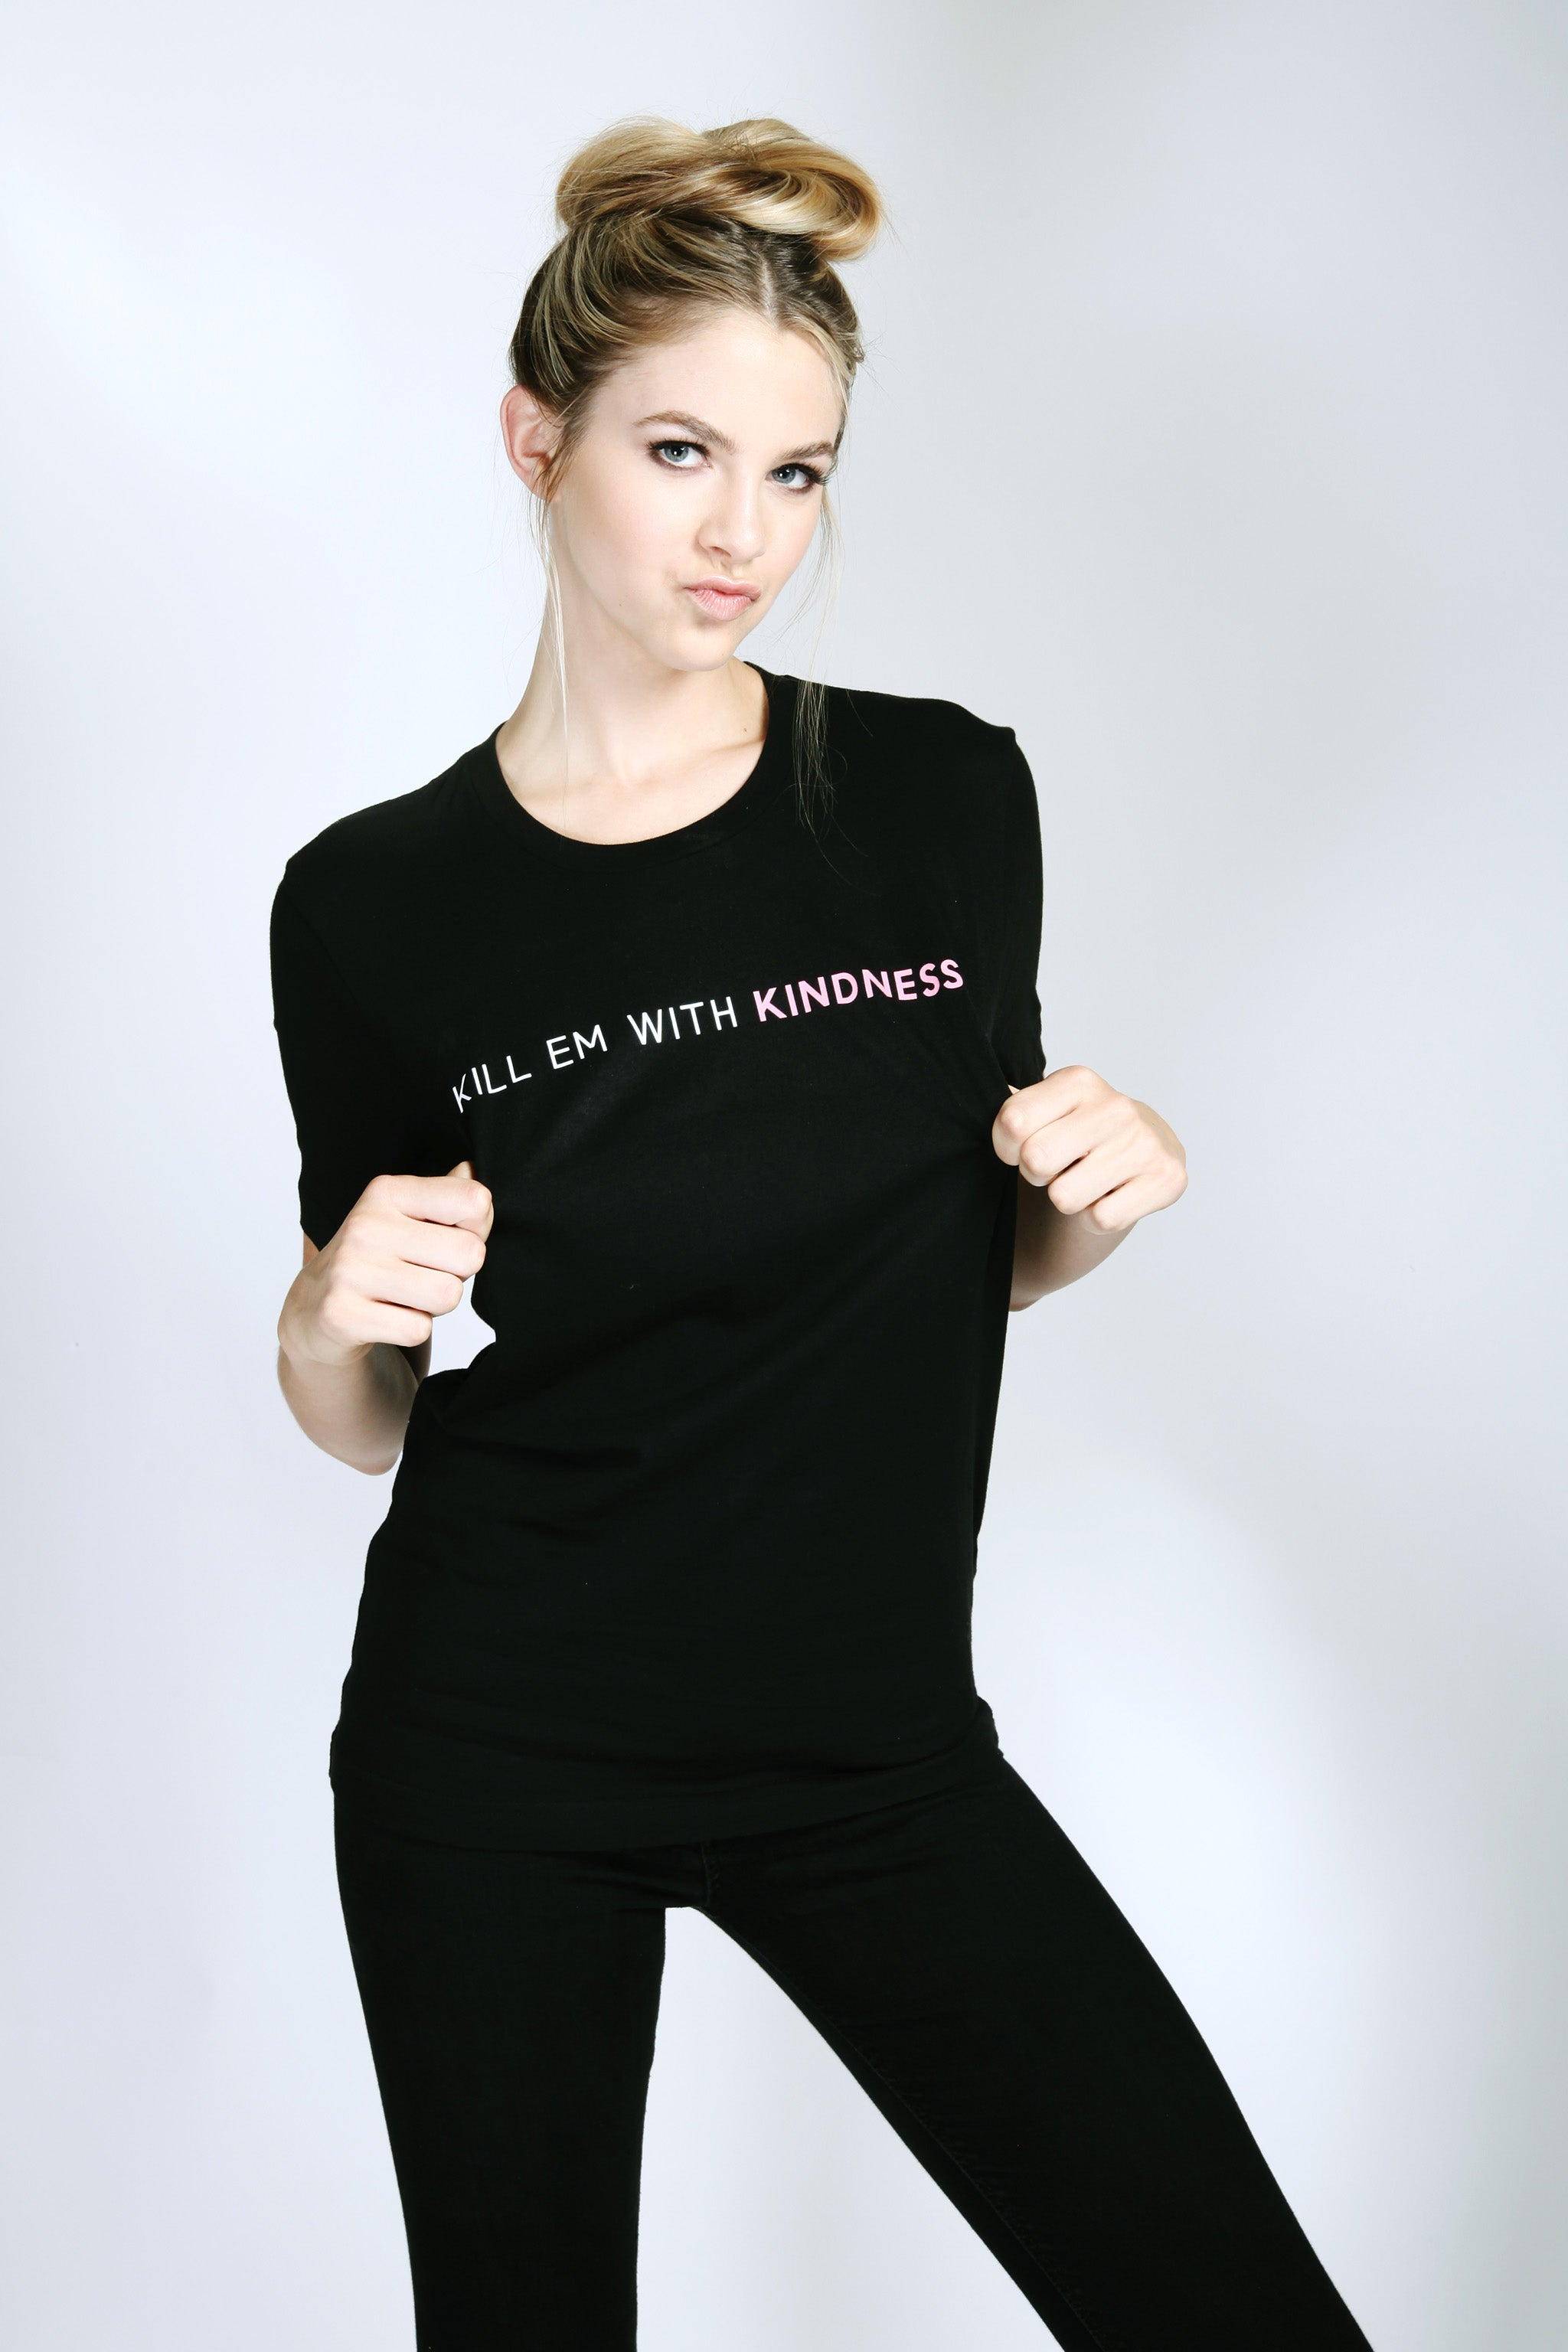 Kill-Em With Kindness T-Shirt Rocker Black Oversized Front View